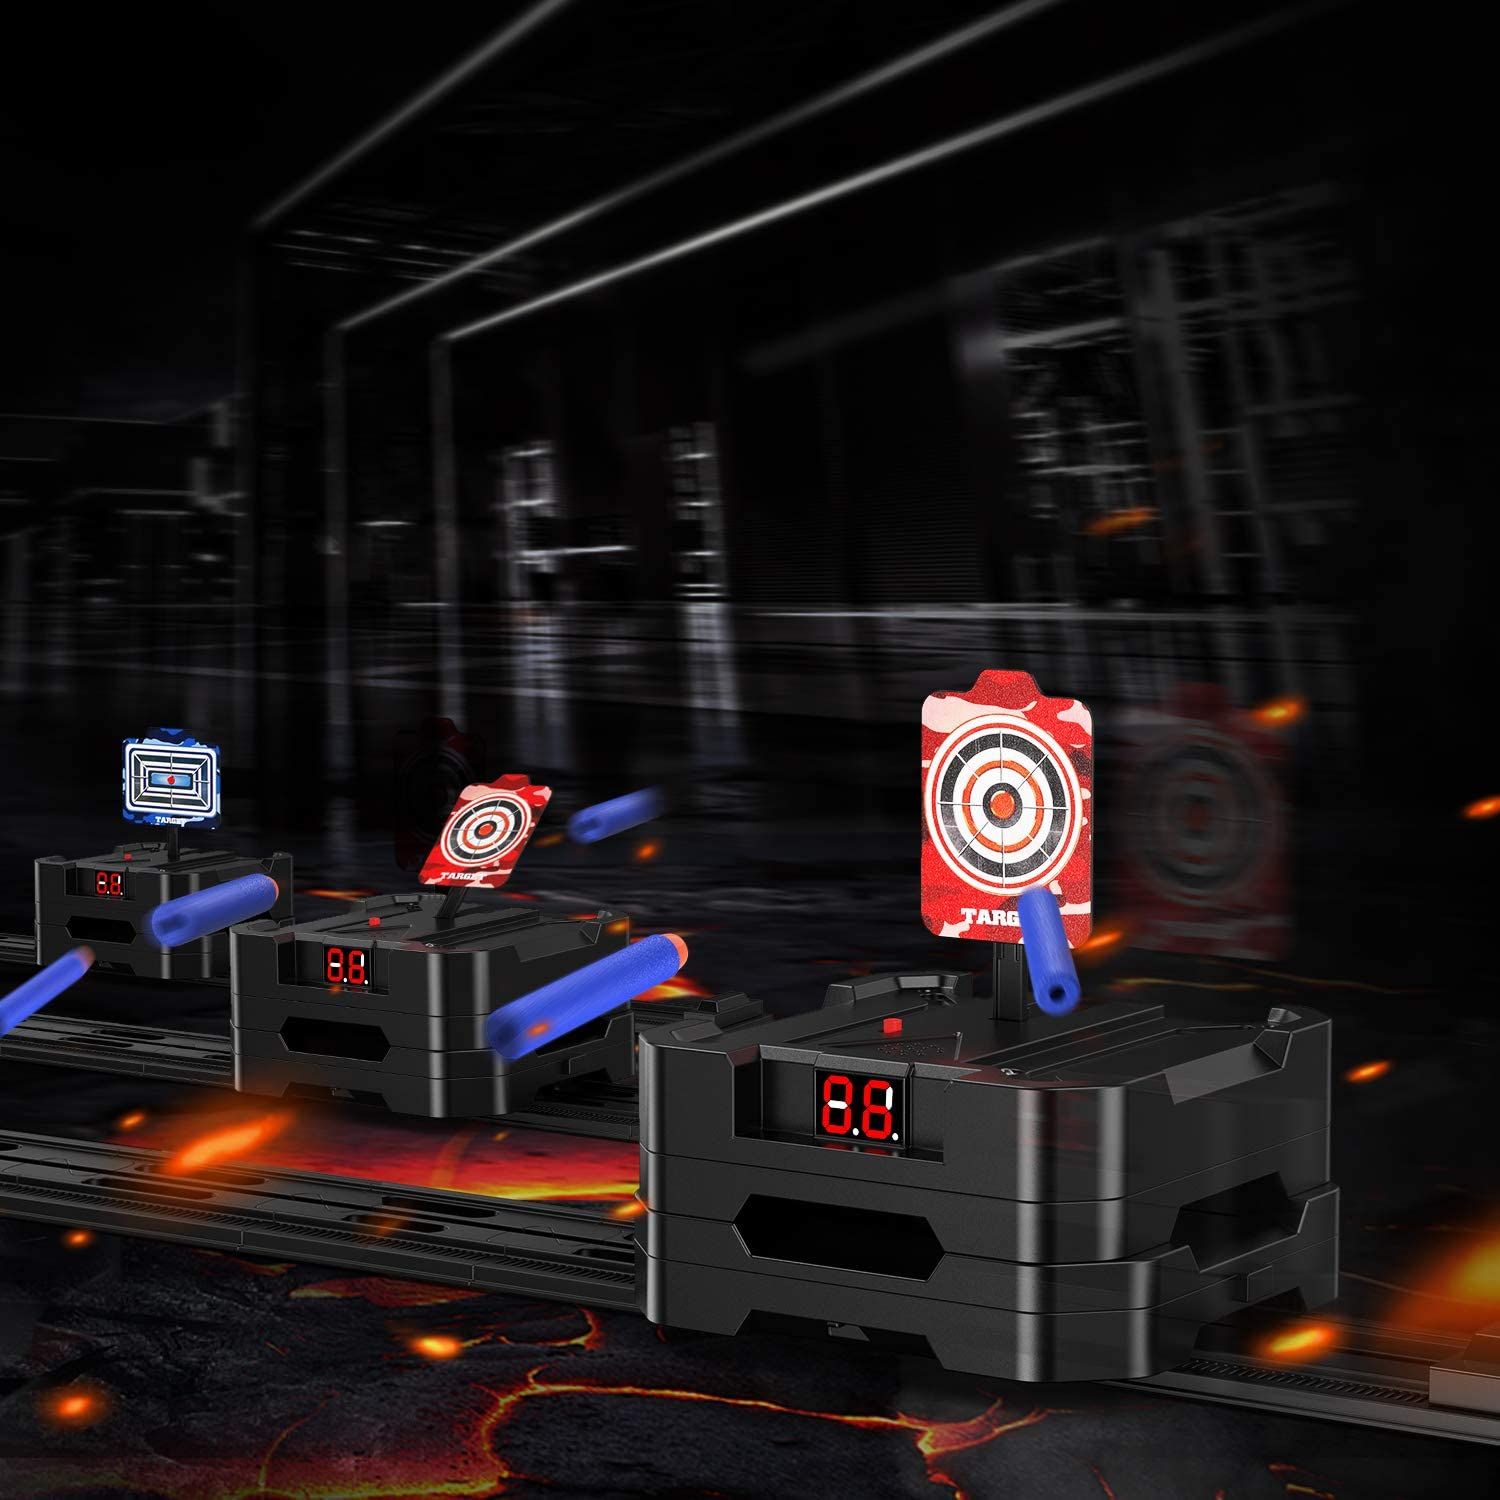 Teens MASCARRY Electric Scoring Target Running Auto Reset Shooting Digital Target for Nerf Guns Blaster Elite//Mega//Rival Series with 20 Pcs Refill Darts Ideal Gift Toys for Kids 2020 New Version